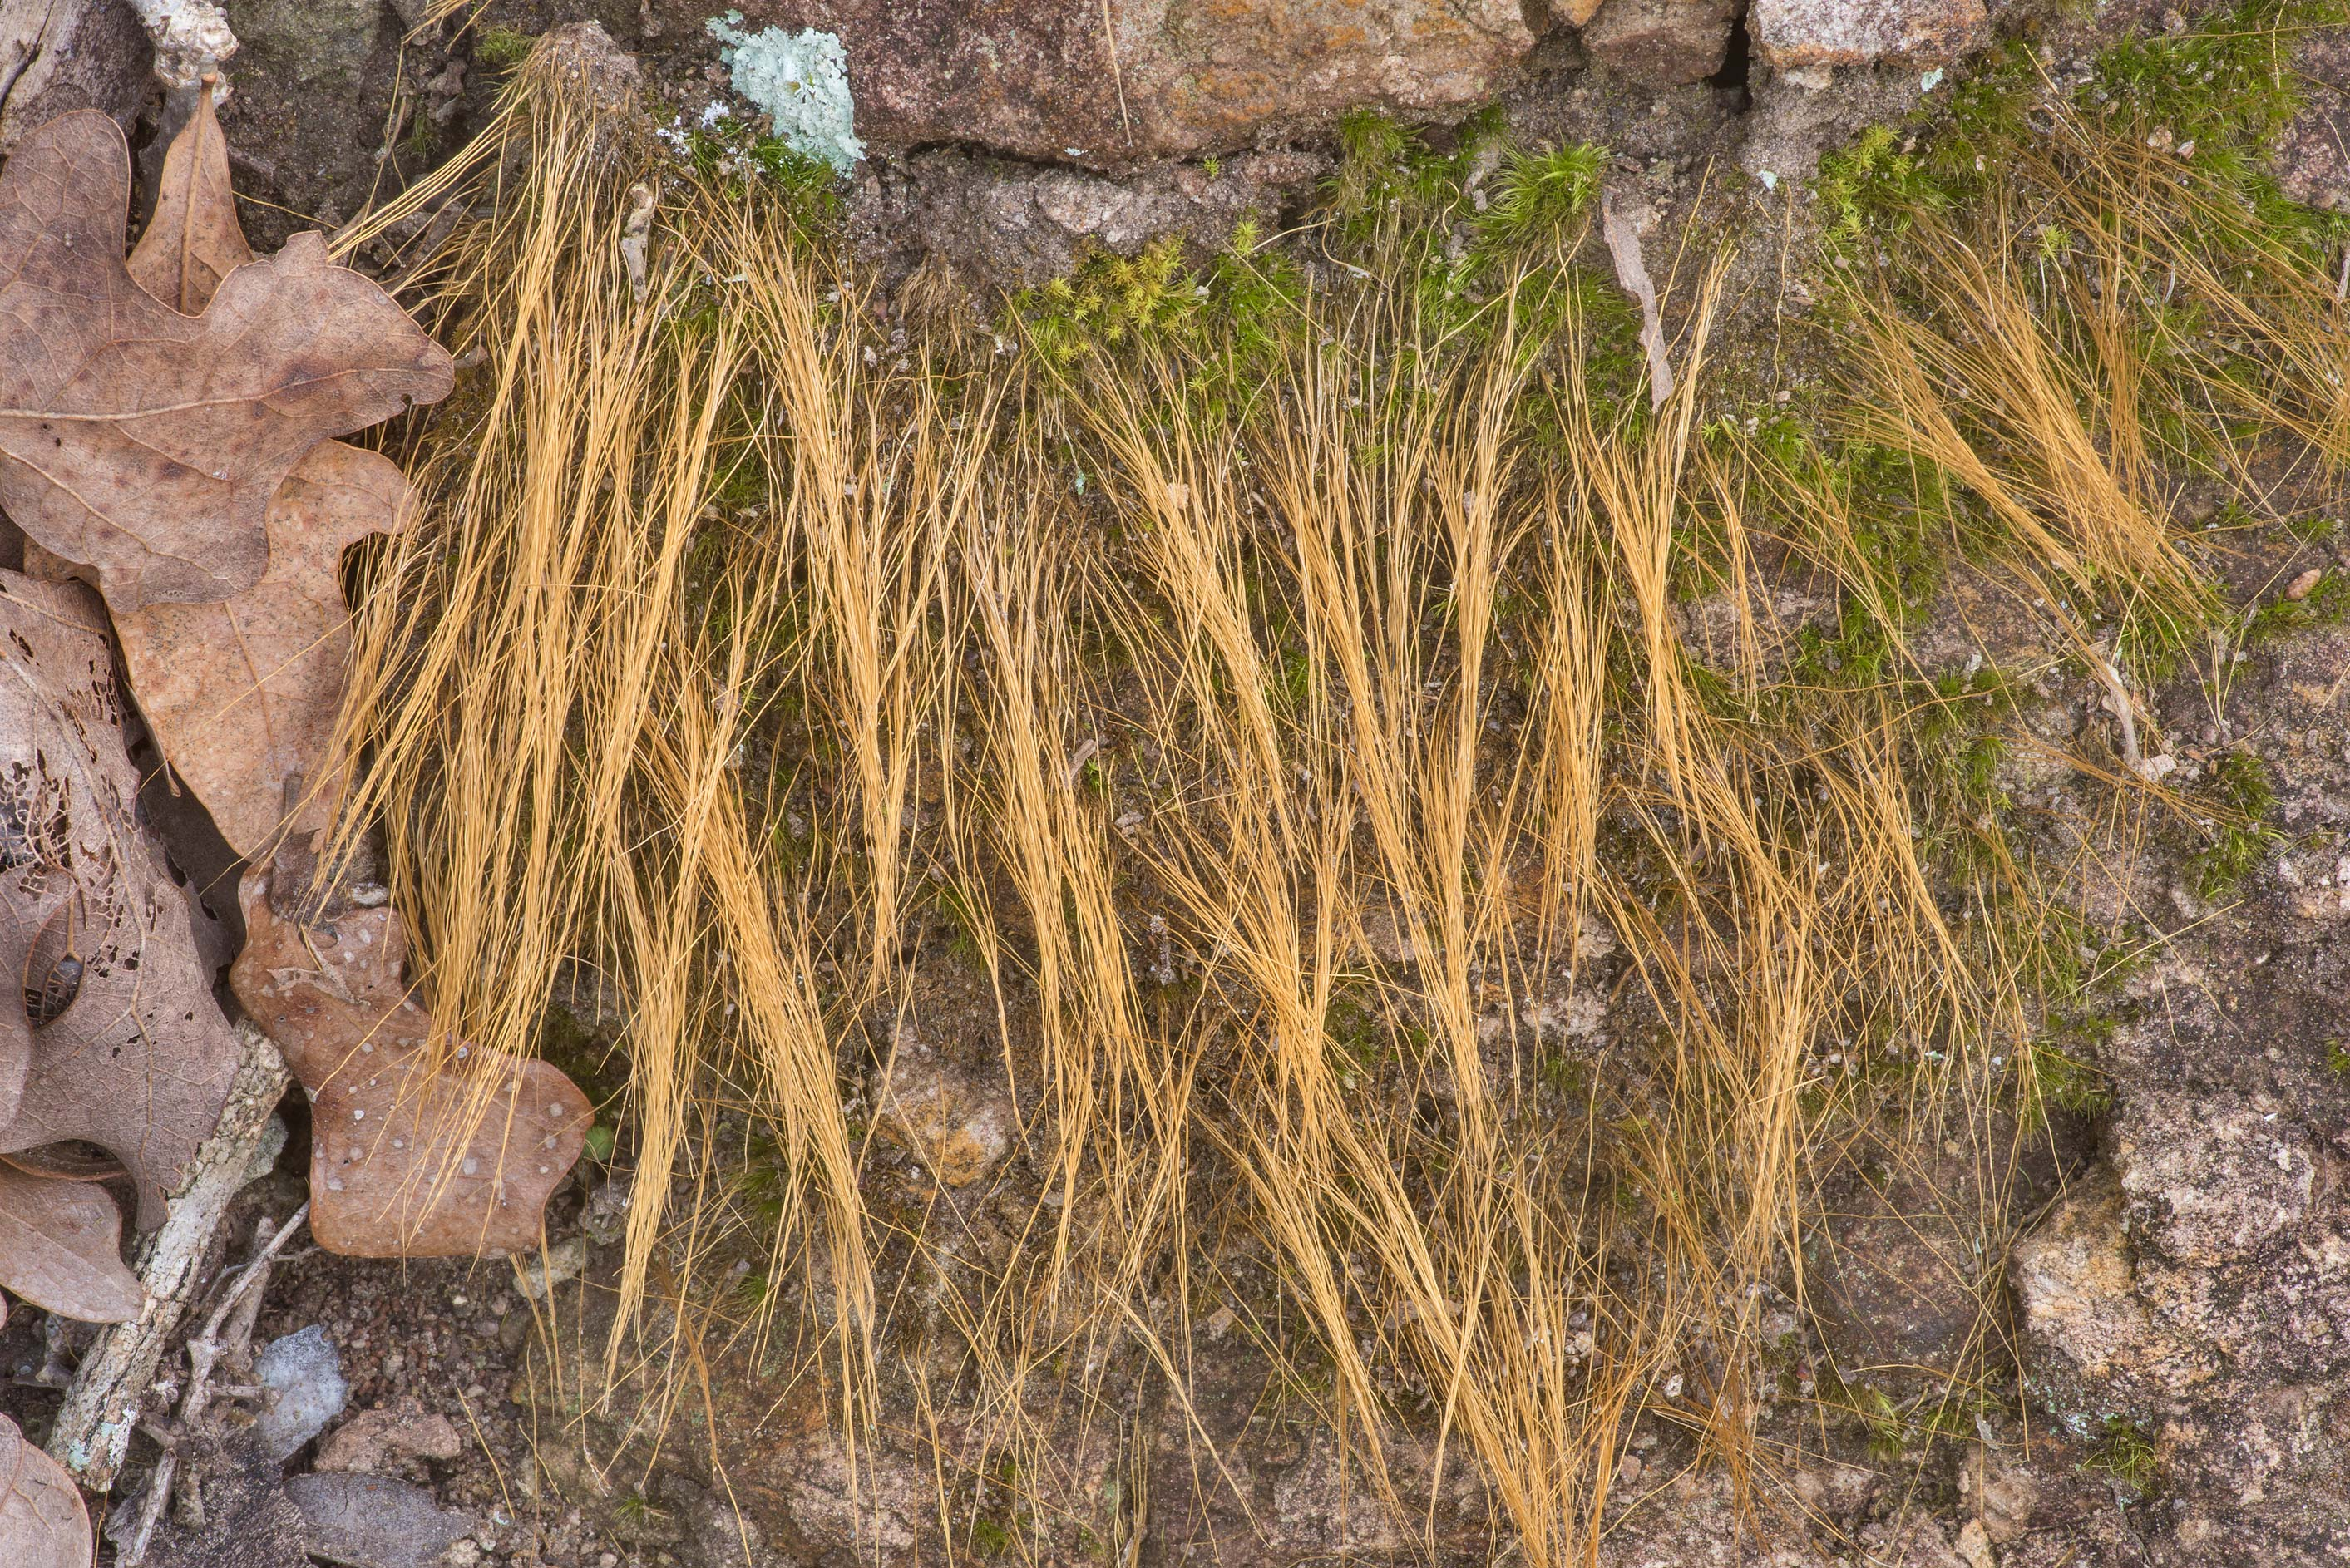 Some moss with long hair-like filaments on a...of Somerville Lake State Park. Texas